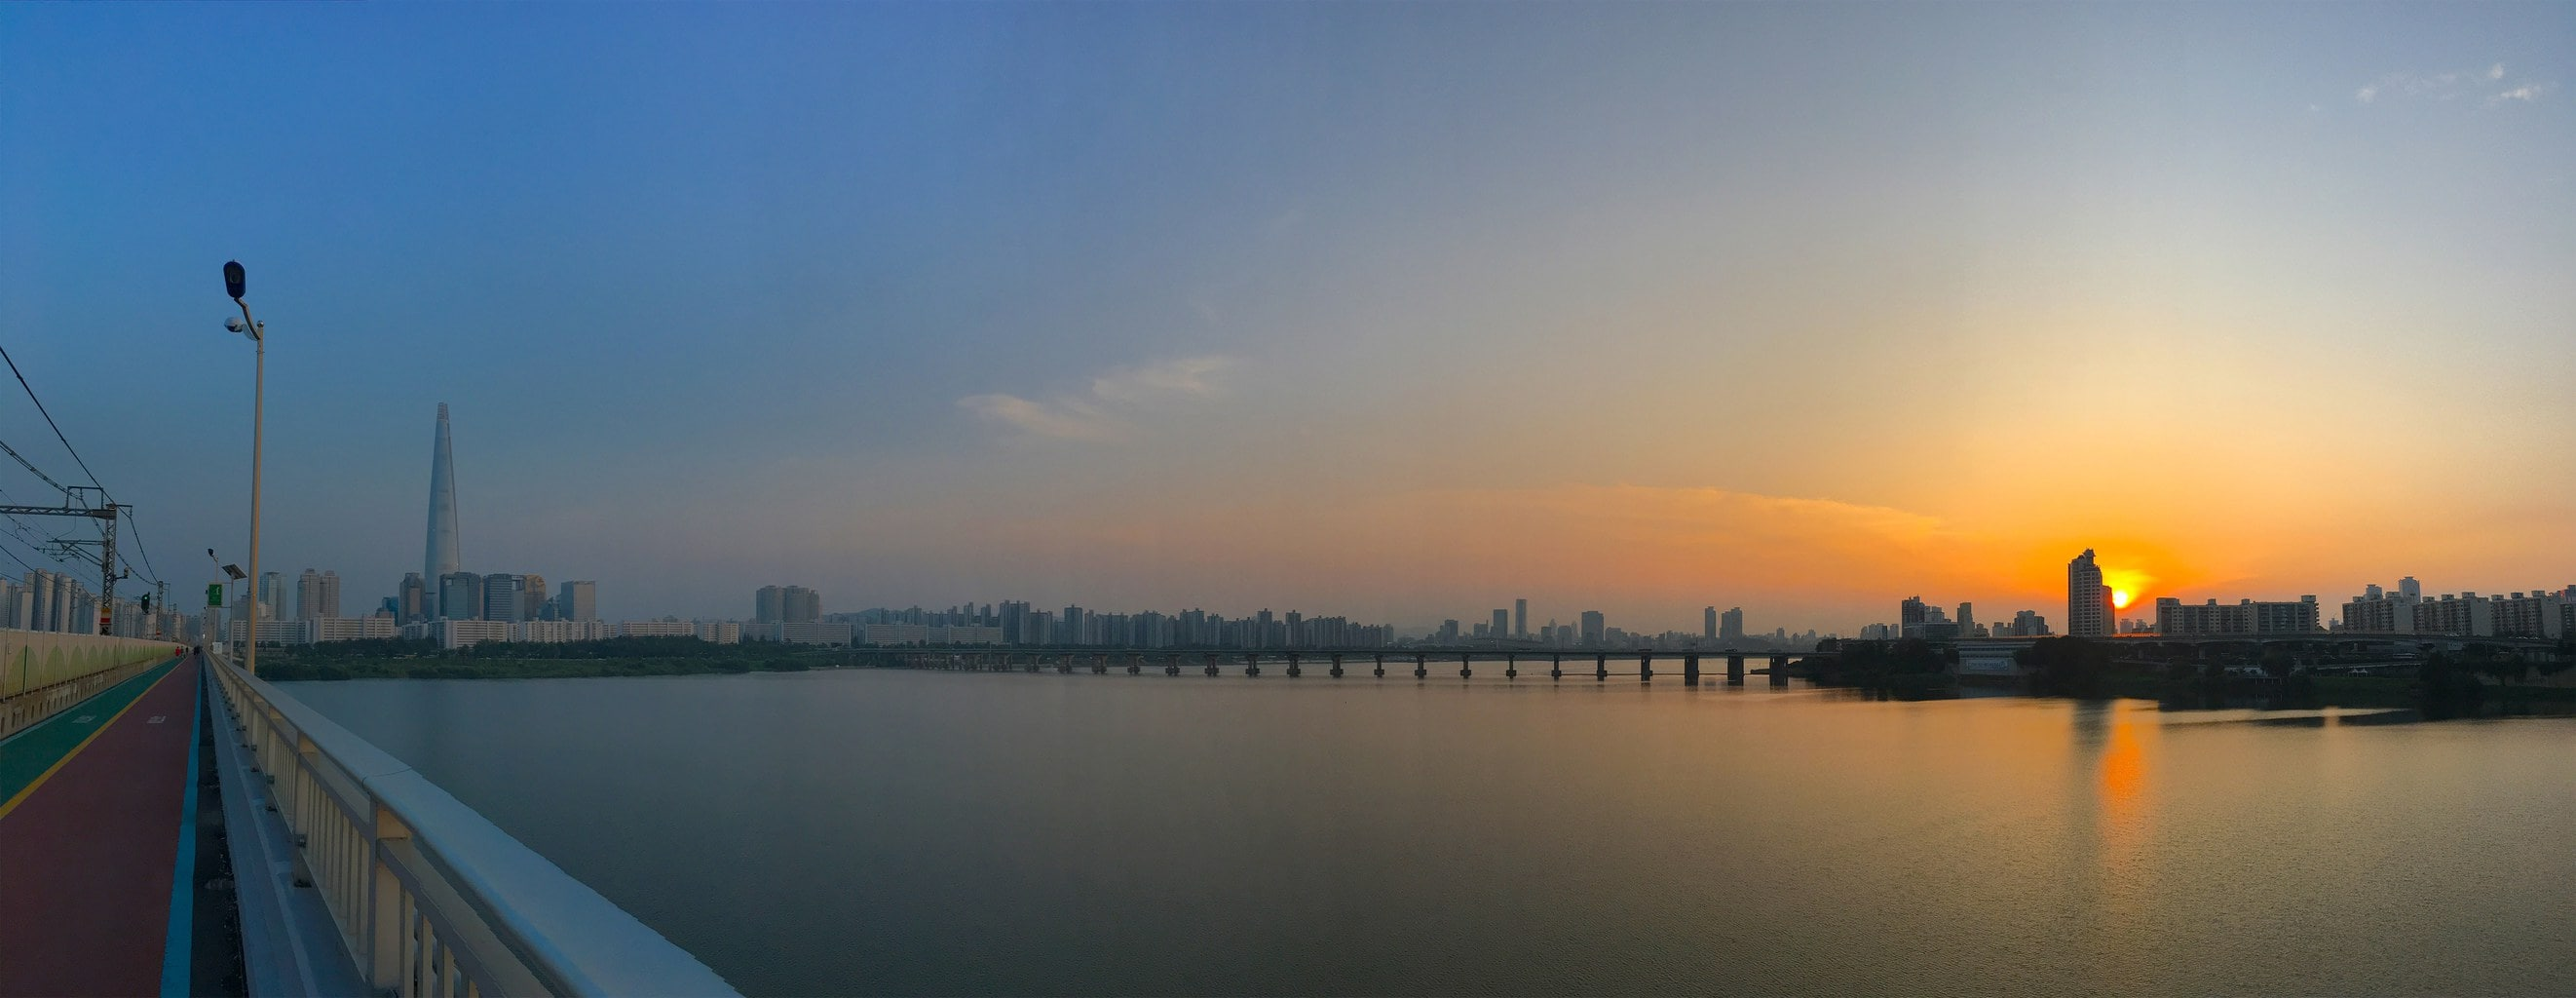 Crossing the Han River by foot into Gangnam